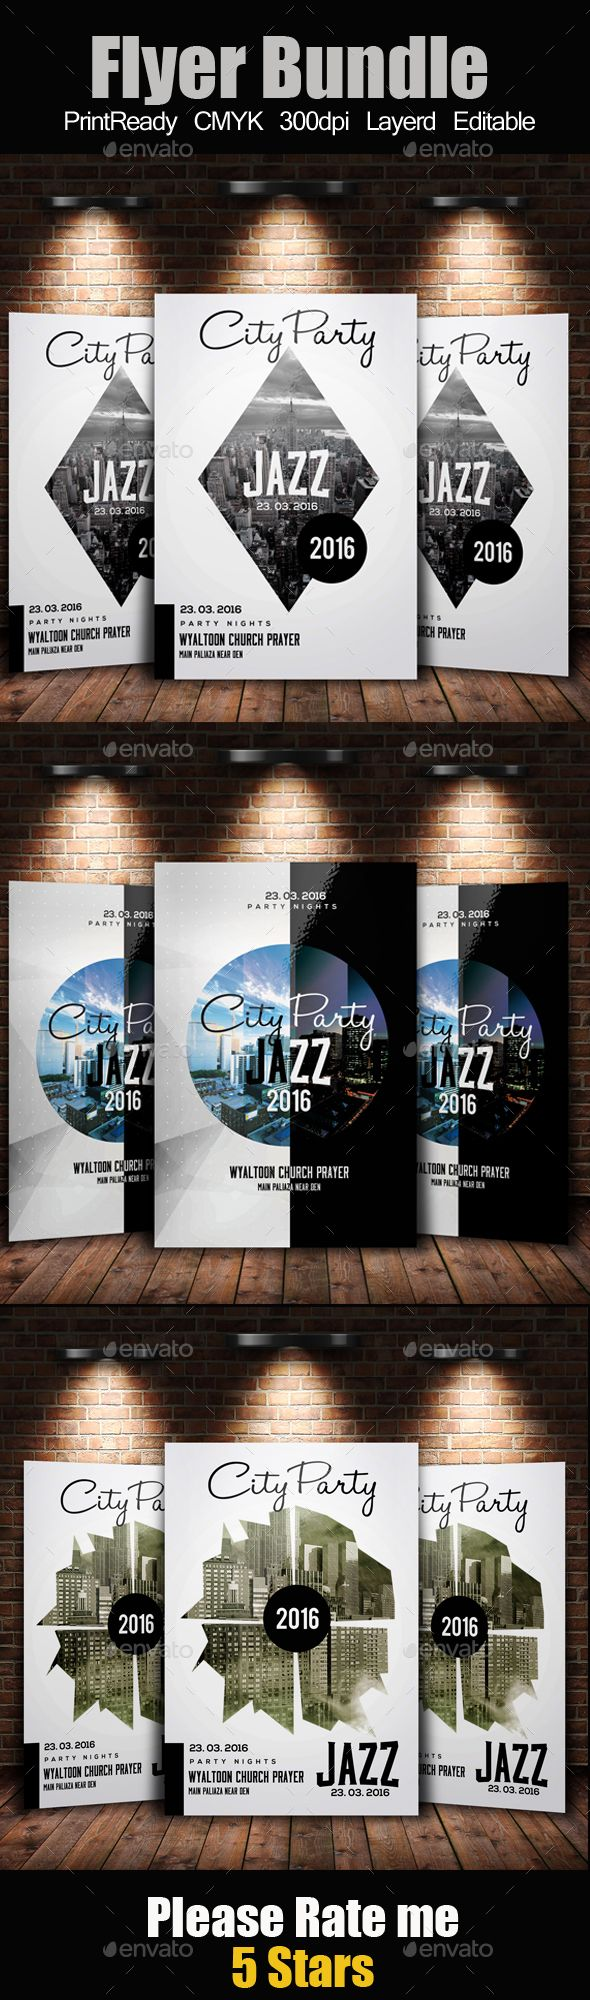 Night City Party Flyer Template Bundle 238